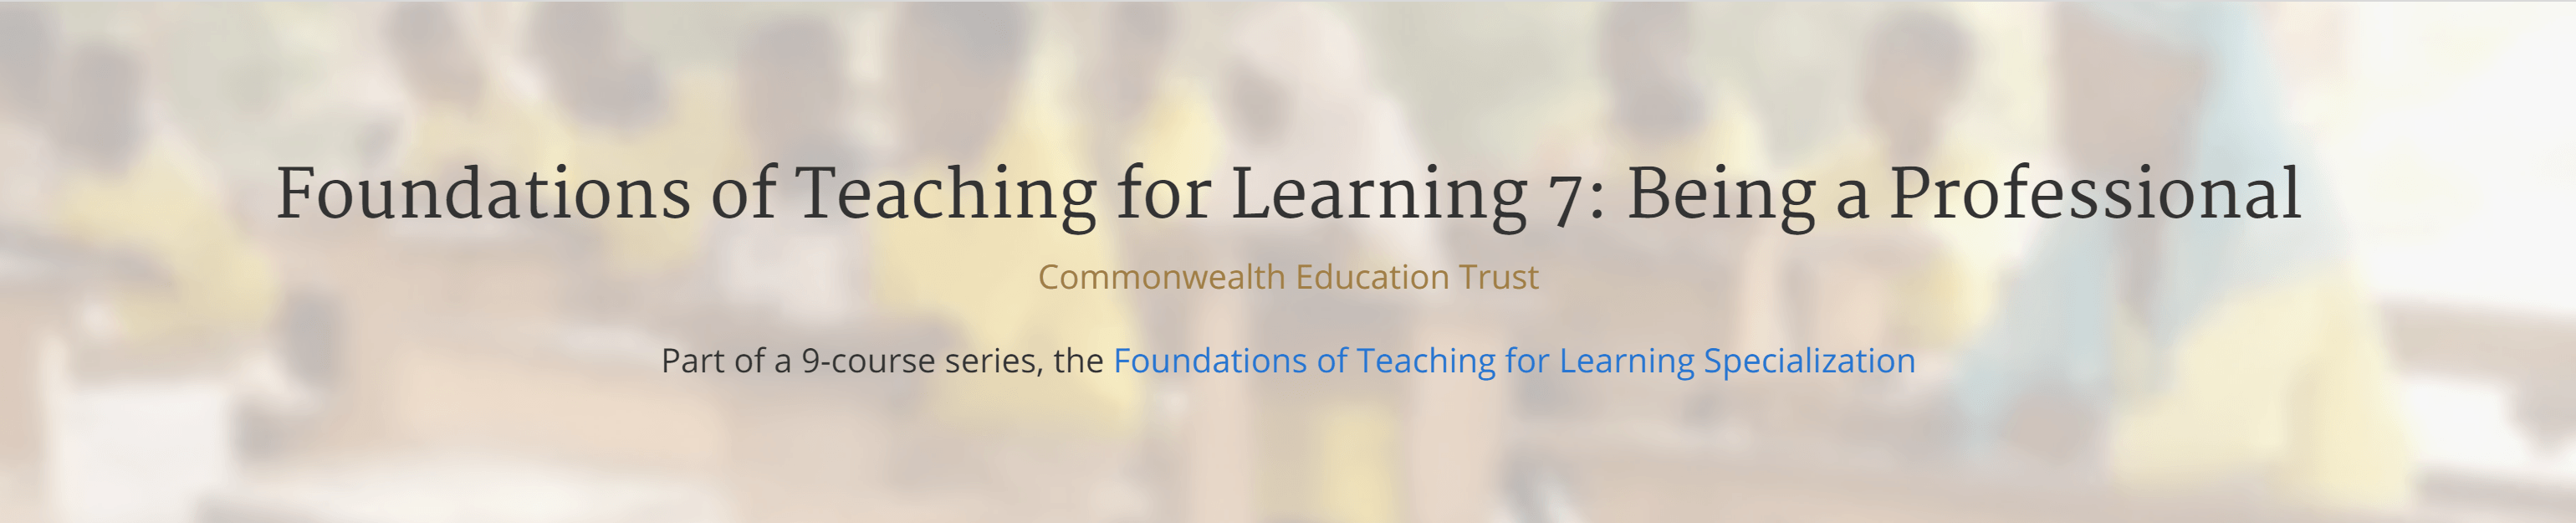 Foundations of Teaching for Learning 7: Being a Professional @ online